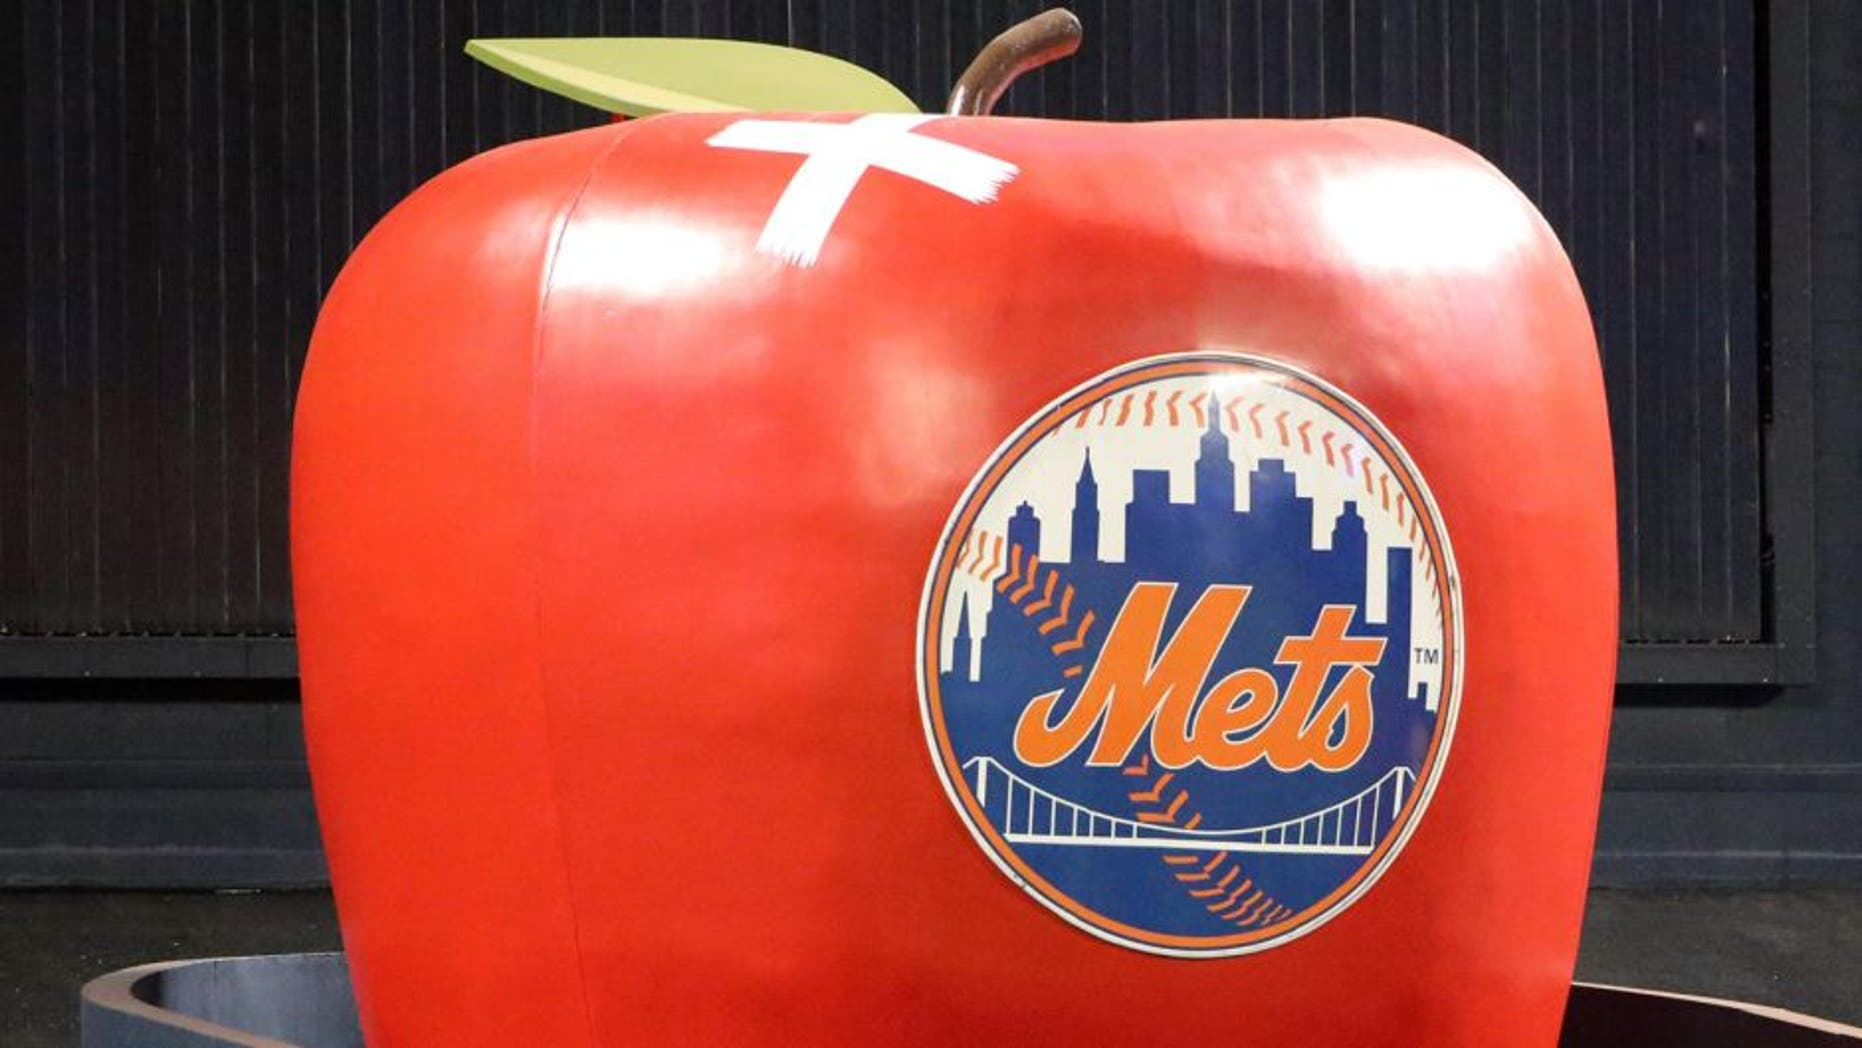 Oct 18, 2015; New York City, NY, USA; A general view as the apple in center field sports a bandage where it was hit on a solo home run hit by New York Mets catcher Travis d'Arnaud (not pictured) during yesterday's game one of the NLCS against the Chicago Cubs , as seen prior to game two at Citi Field. Mandatory Credit: Anthony Gruppuso-USA TODAY Sports